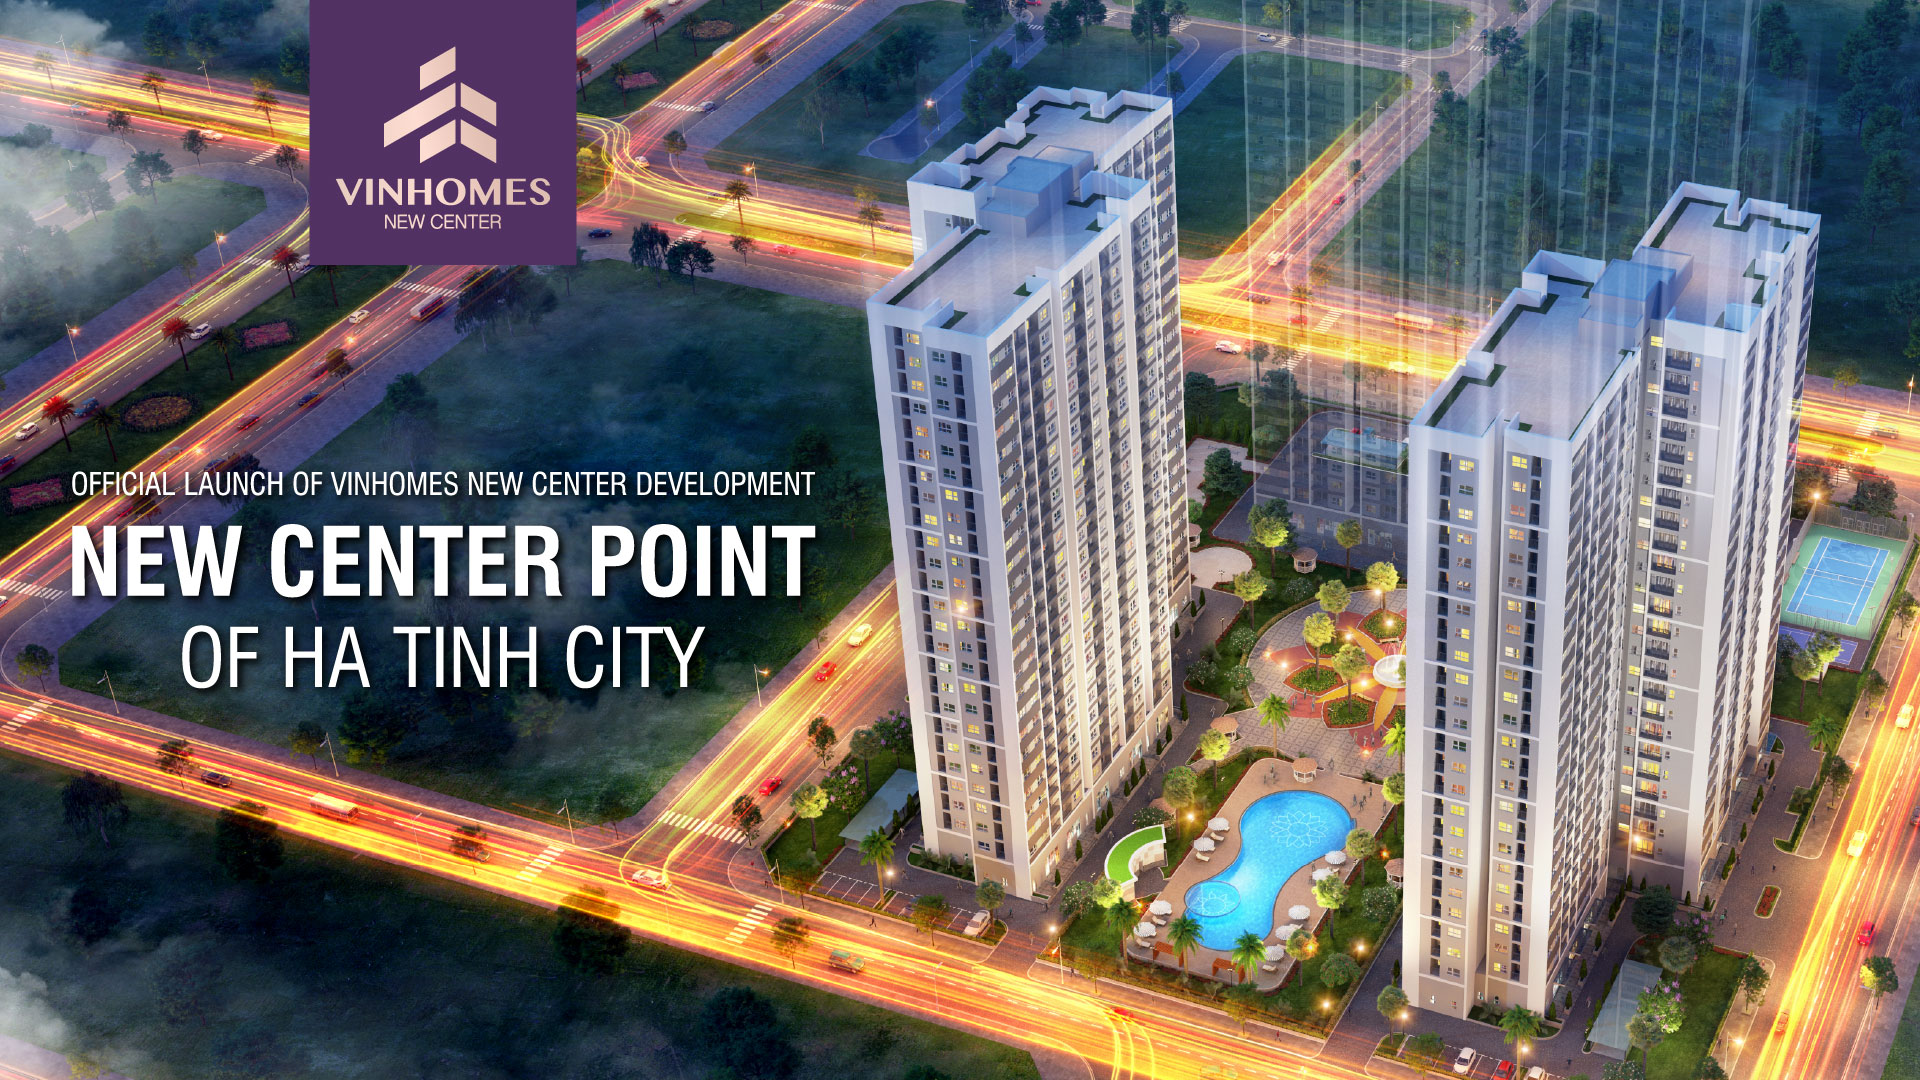 Vinhomes New Center project official launched - New center of Ha Tinh City